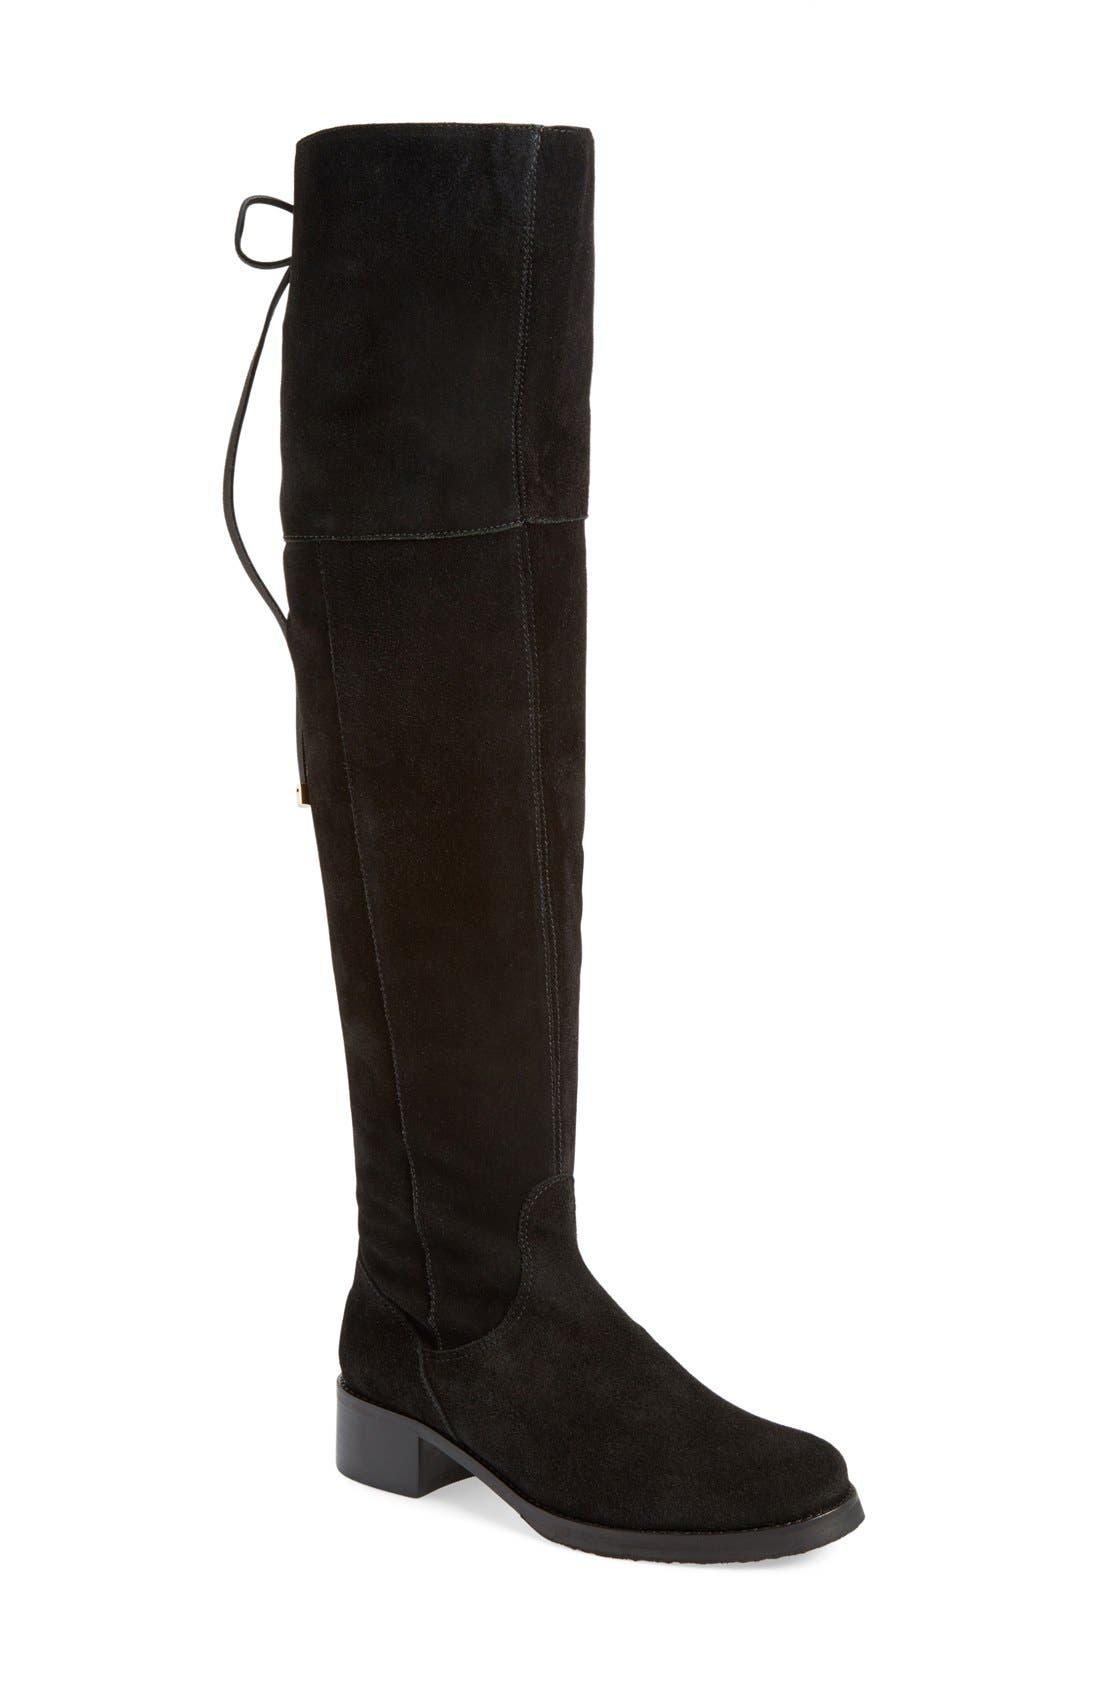 Alternate Image 1 Selected - Klub Nico 'Zuni' Over the Knee Boot (Women) (Wide Calf)